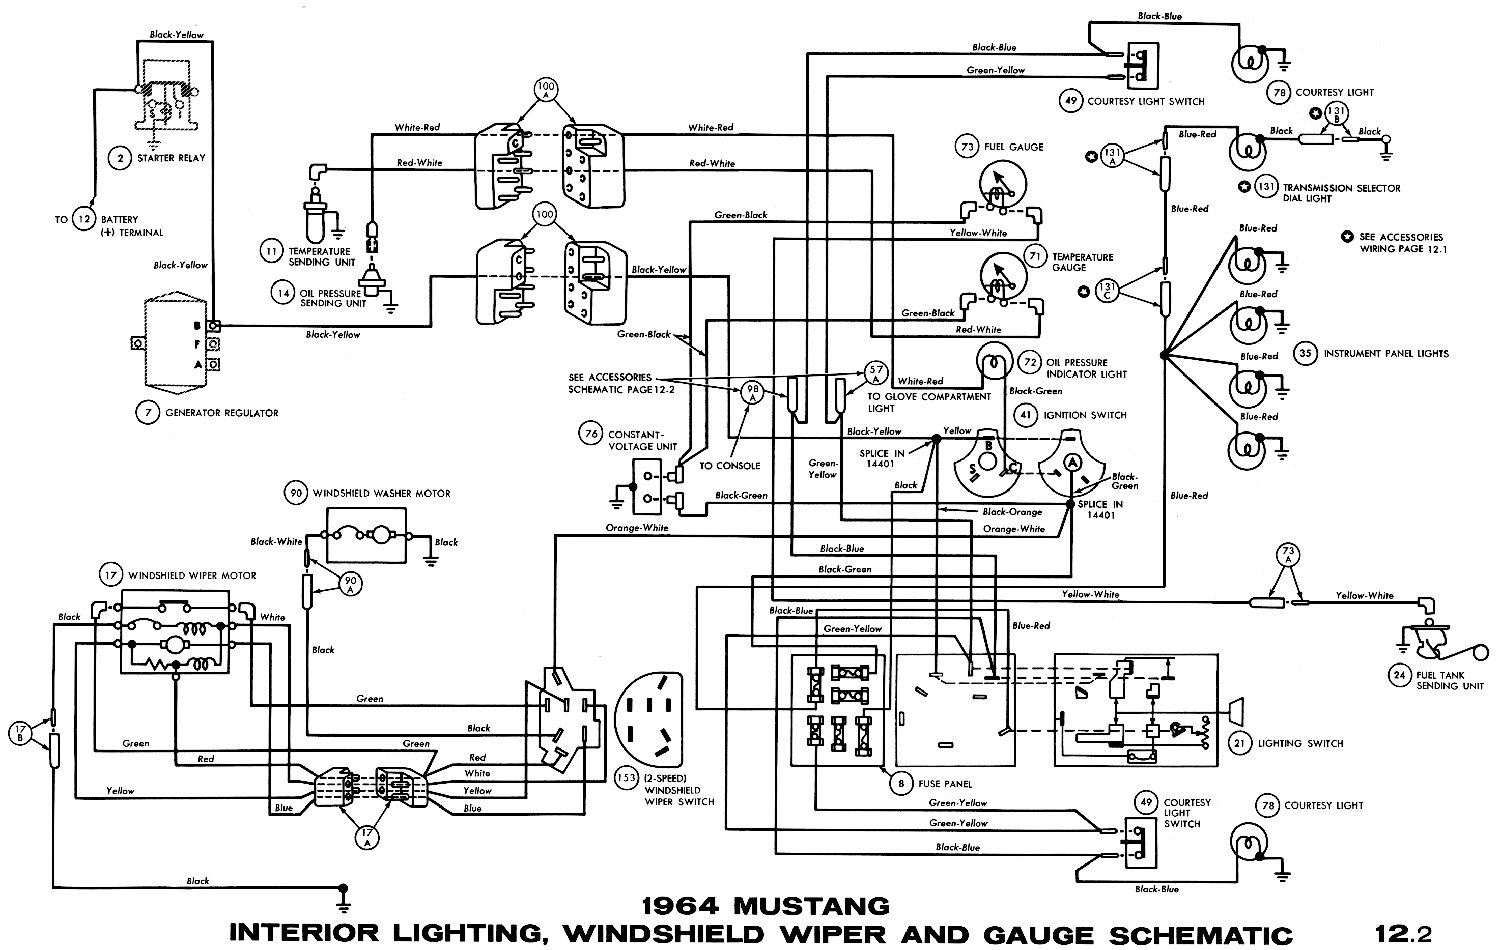 exterior wiring diagram image wiring diagram engine schematic